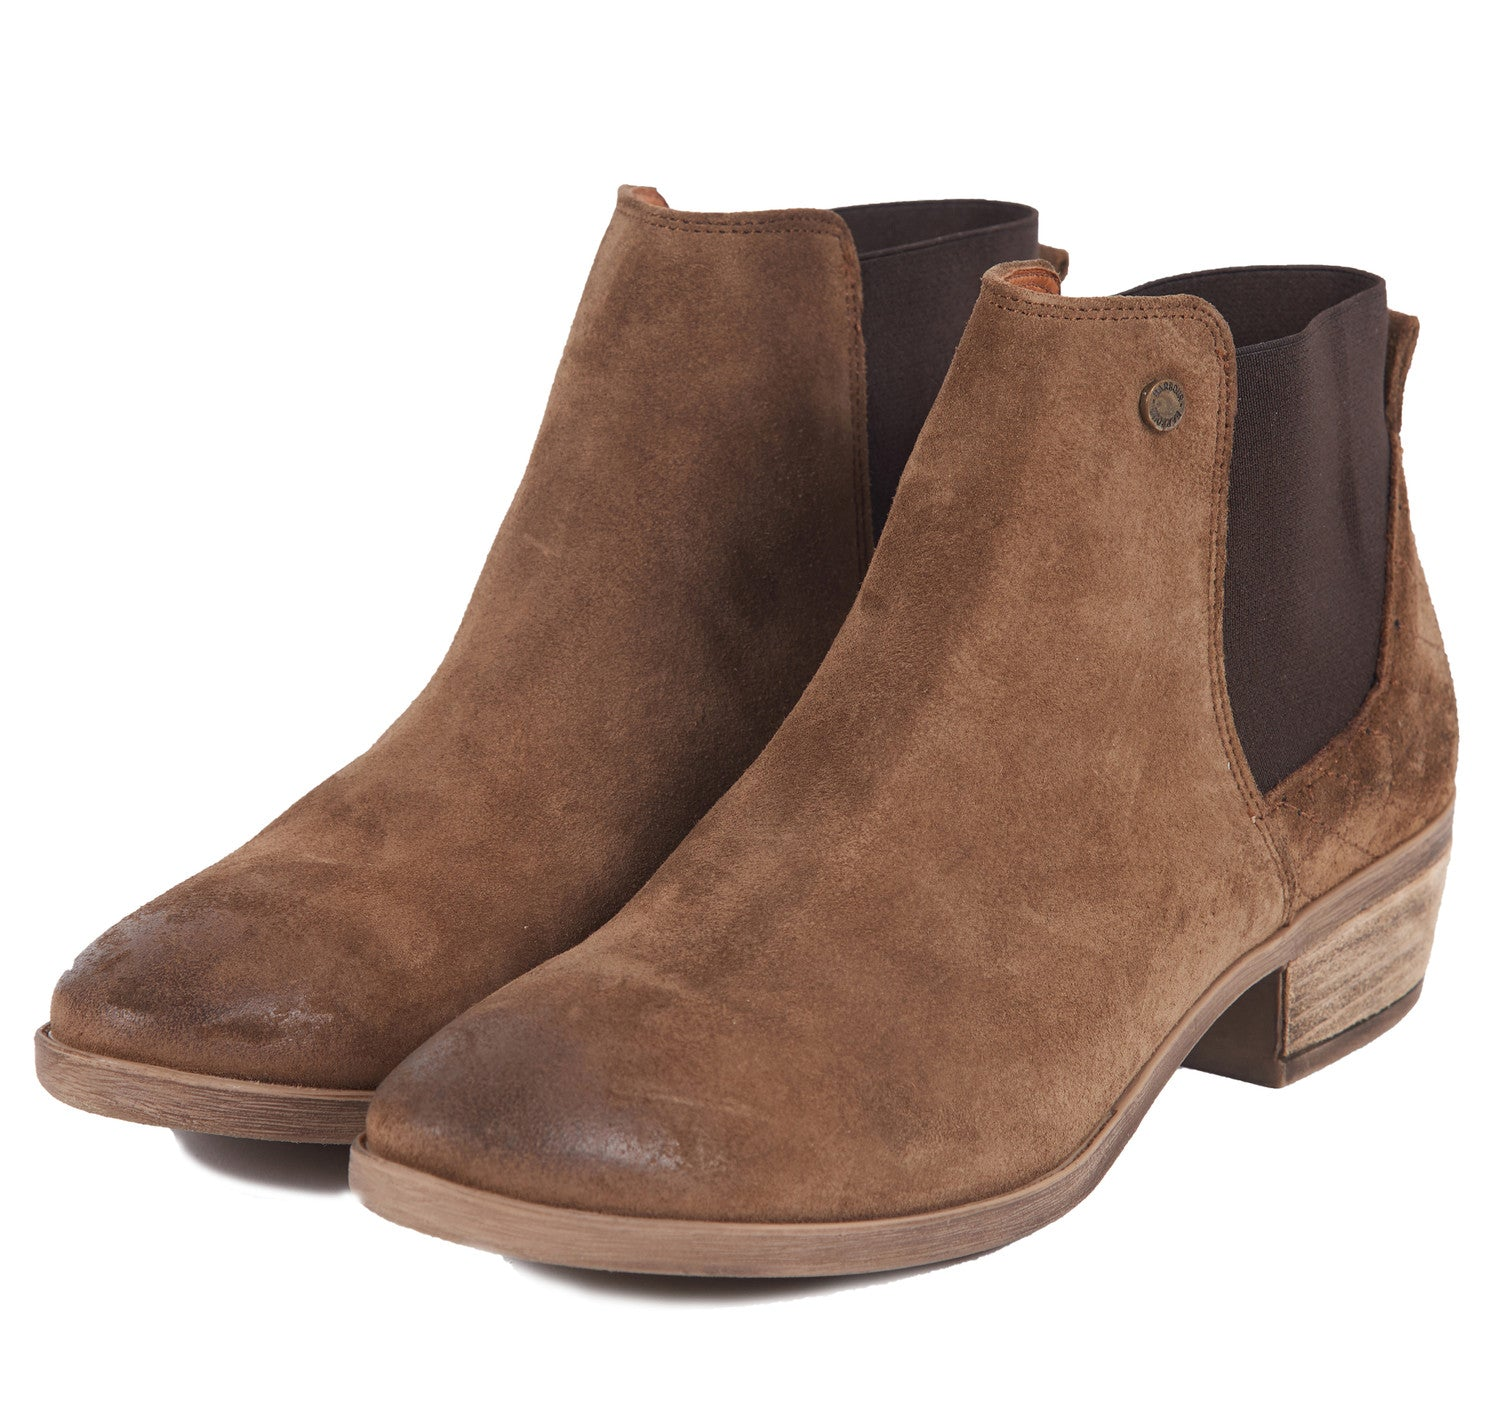 Barbour Vanessa Suede Boots for Ladies in Tobacco